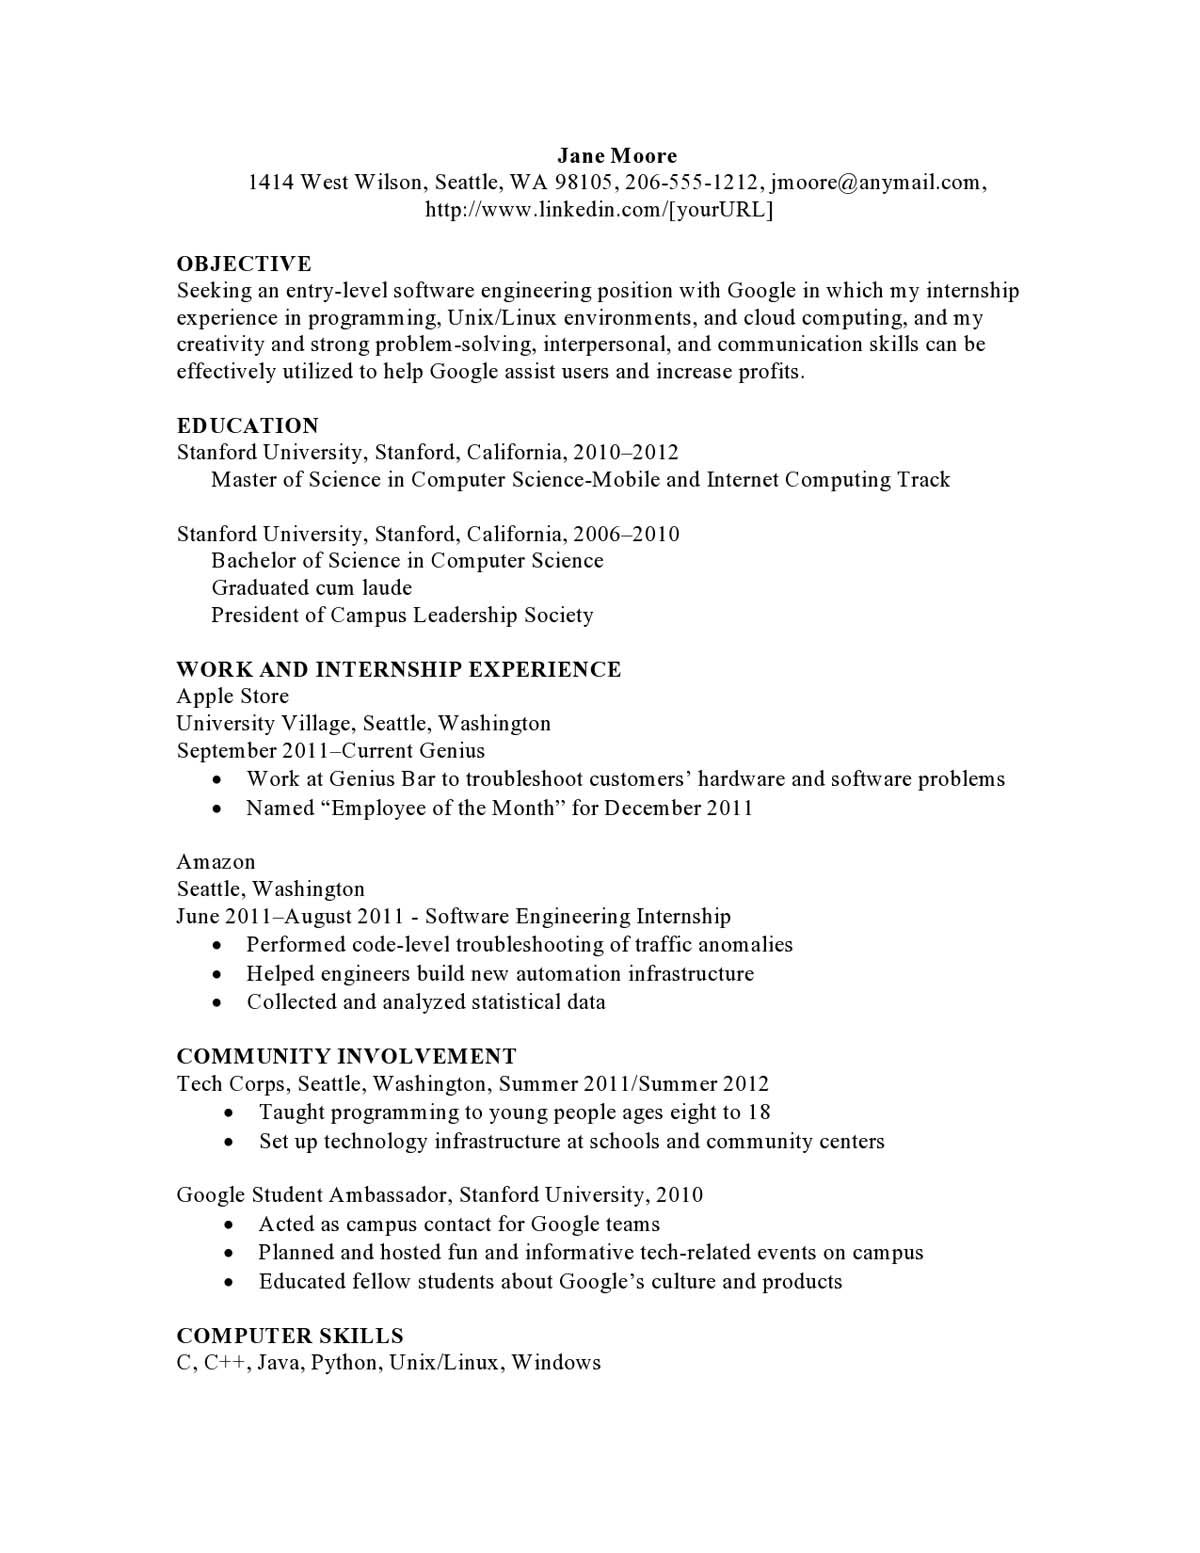 Apple Store Resume Beauteous Computer Software Entry Level Combination Resume  Get Ahead .